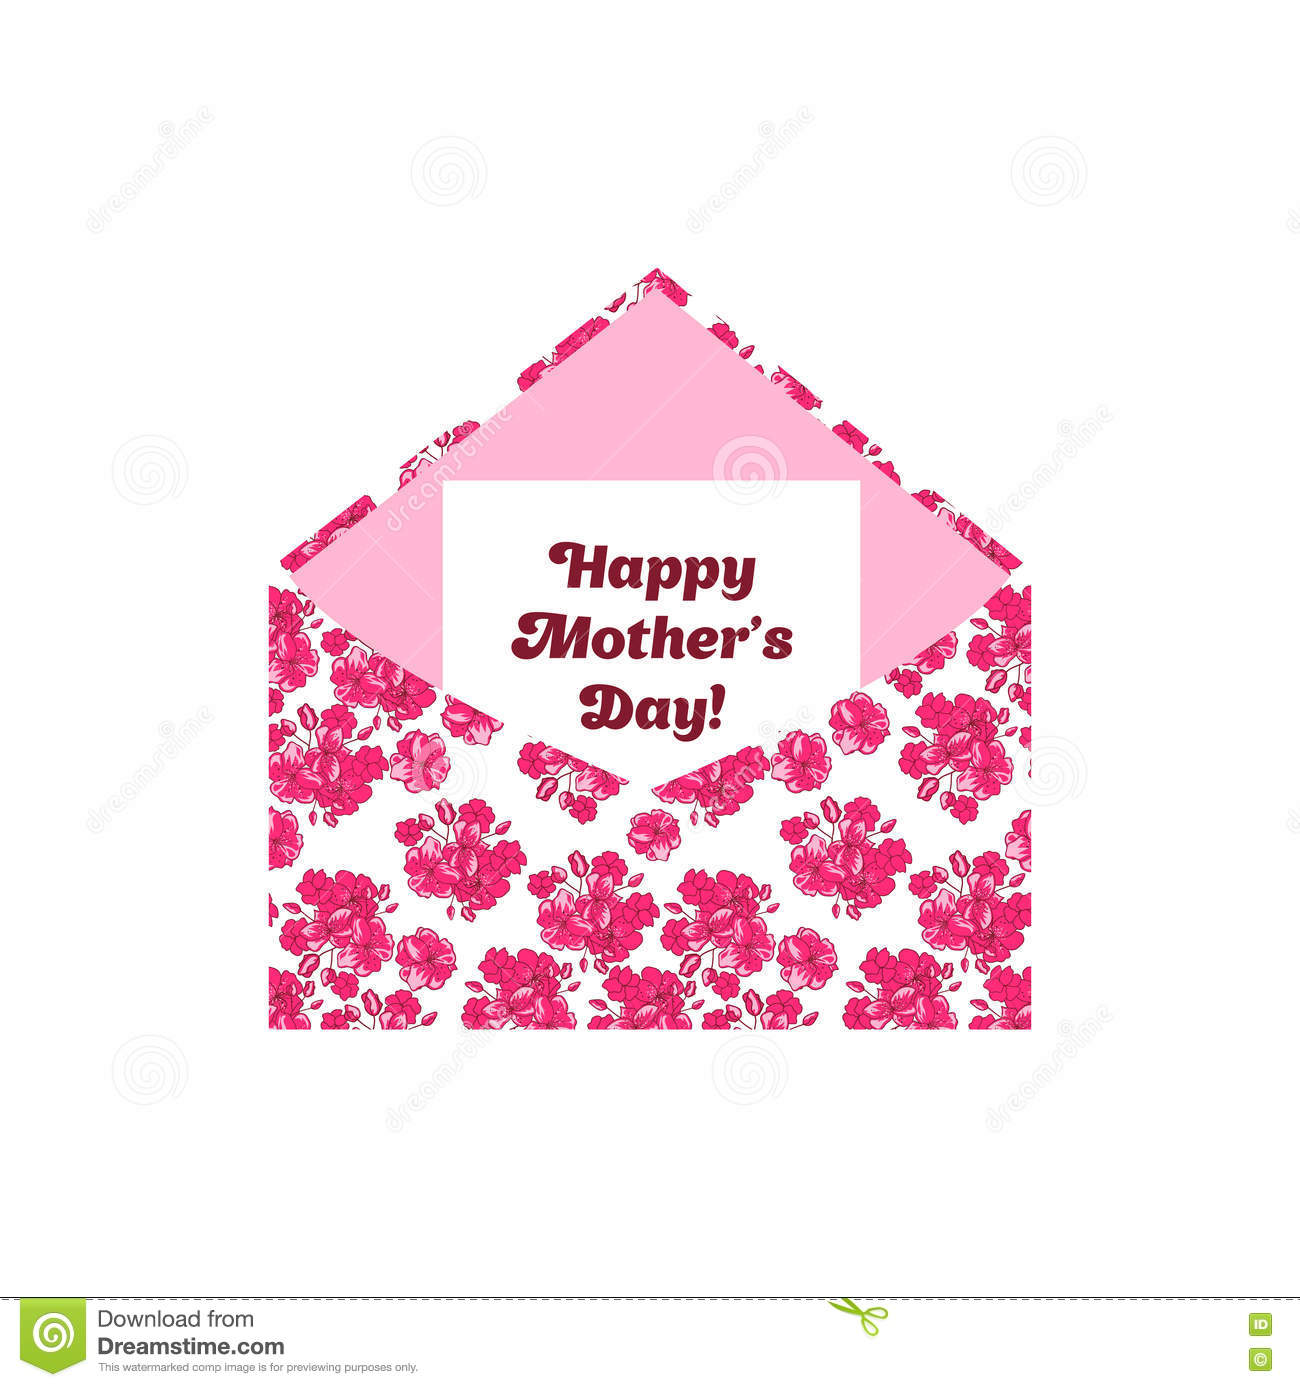 Happy Mother s Day greeting letter in the envelope. Pink flowers.